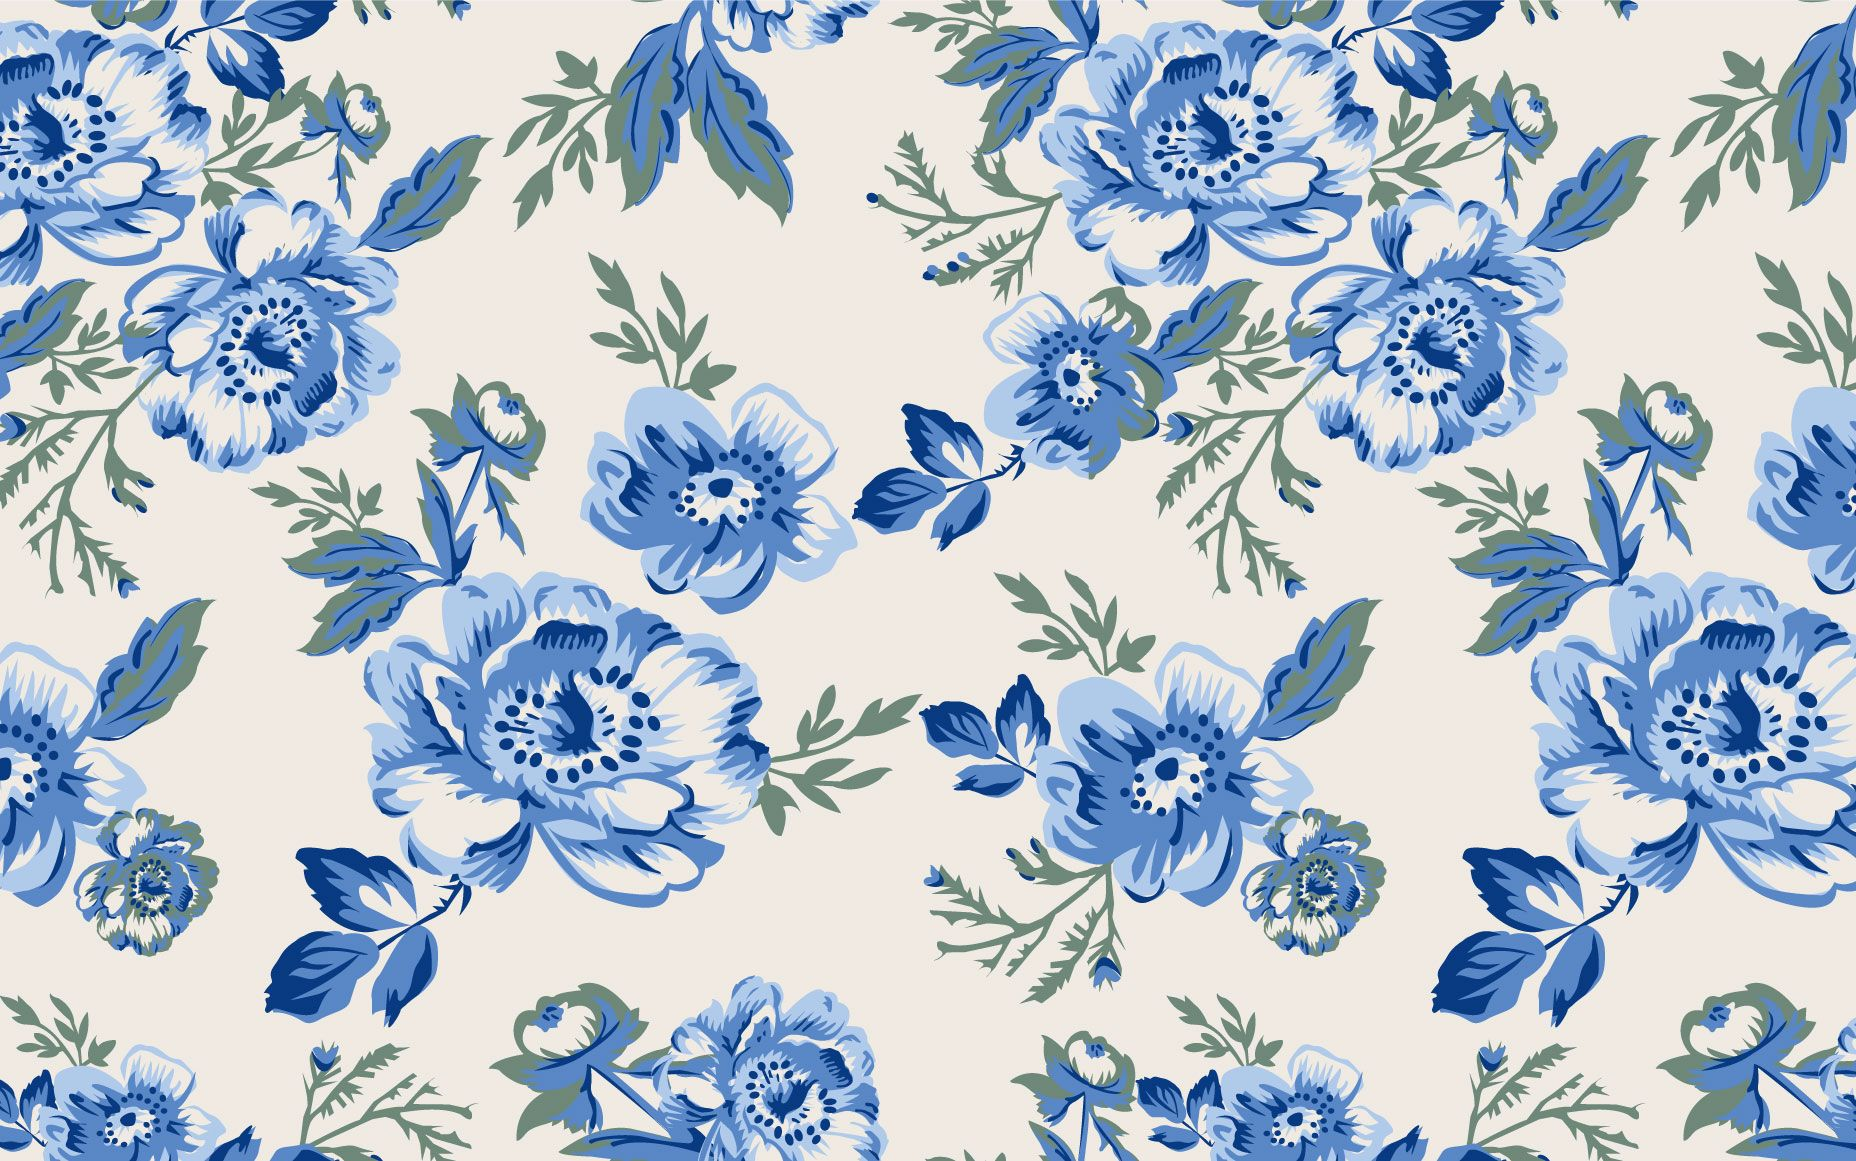 Vintage Blue Fl Wallpaper Migrant Resource Network Blue Vintage Floral Background Is Am In 2020 Vintage Flowers Wallpaper Vintage Floral Wallpapers Floral Background